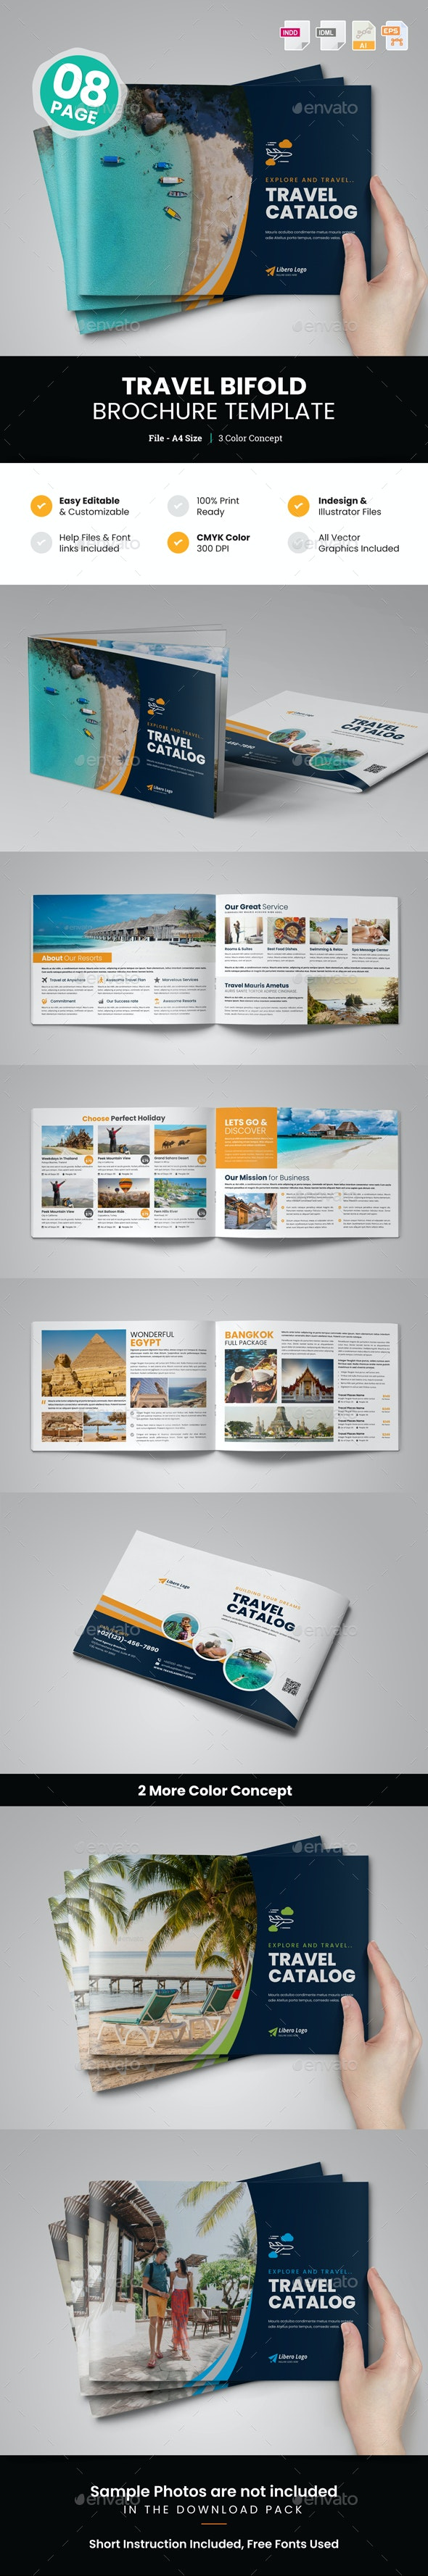 Holiday Travel Bifold Brochure Template v2 - Corporate Brochures